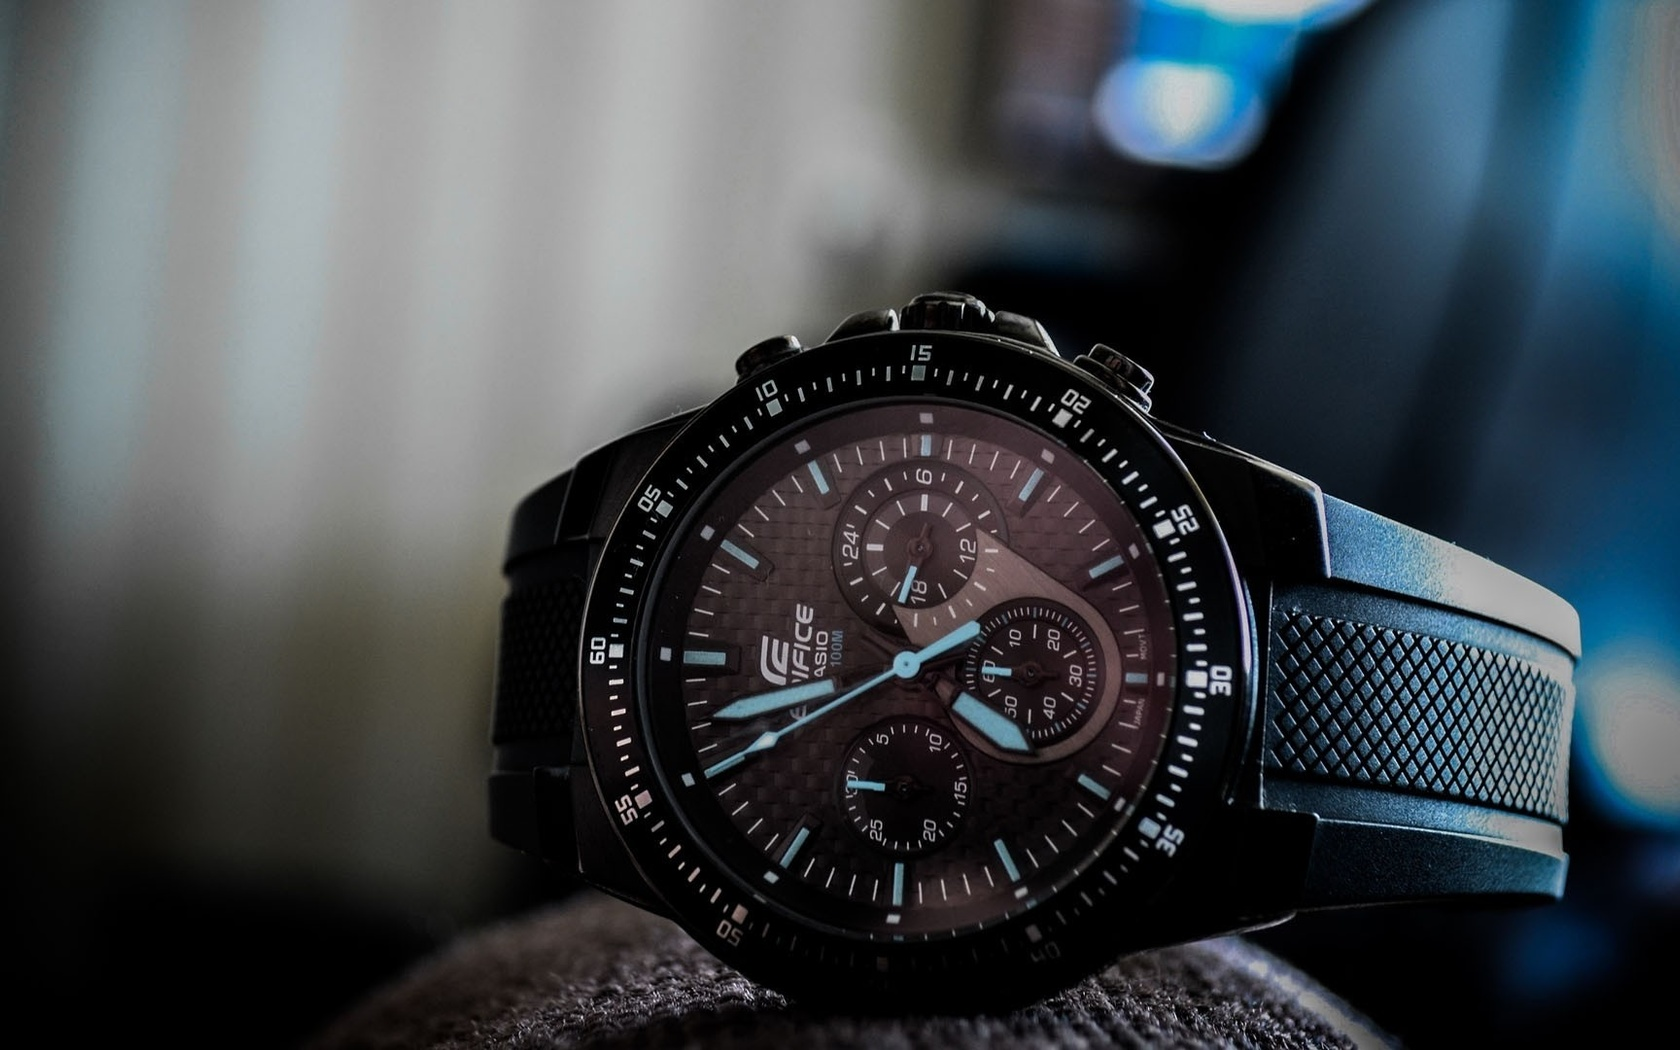 The edifice is casio's peak achievement in a metal analog watch, engineered to f1 standards.